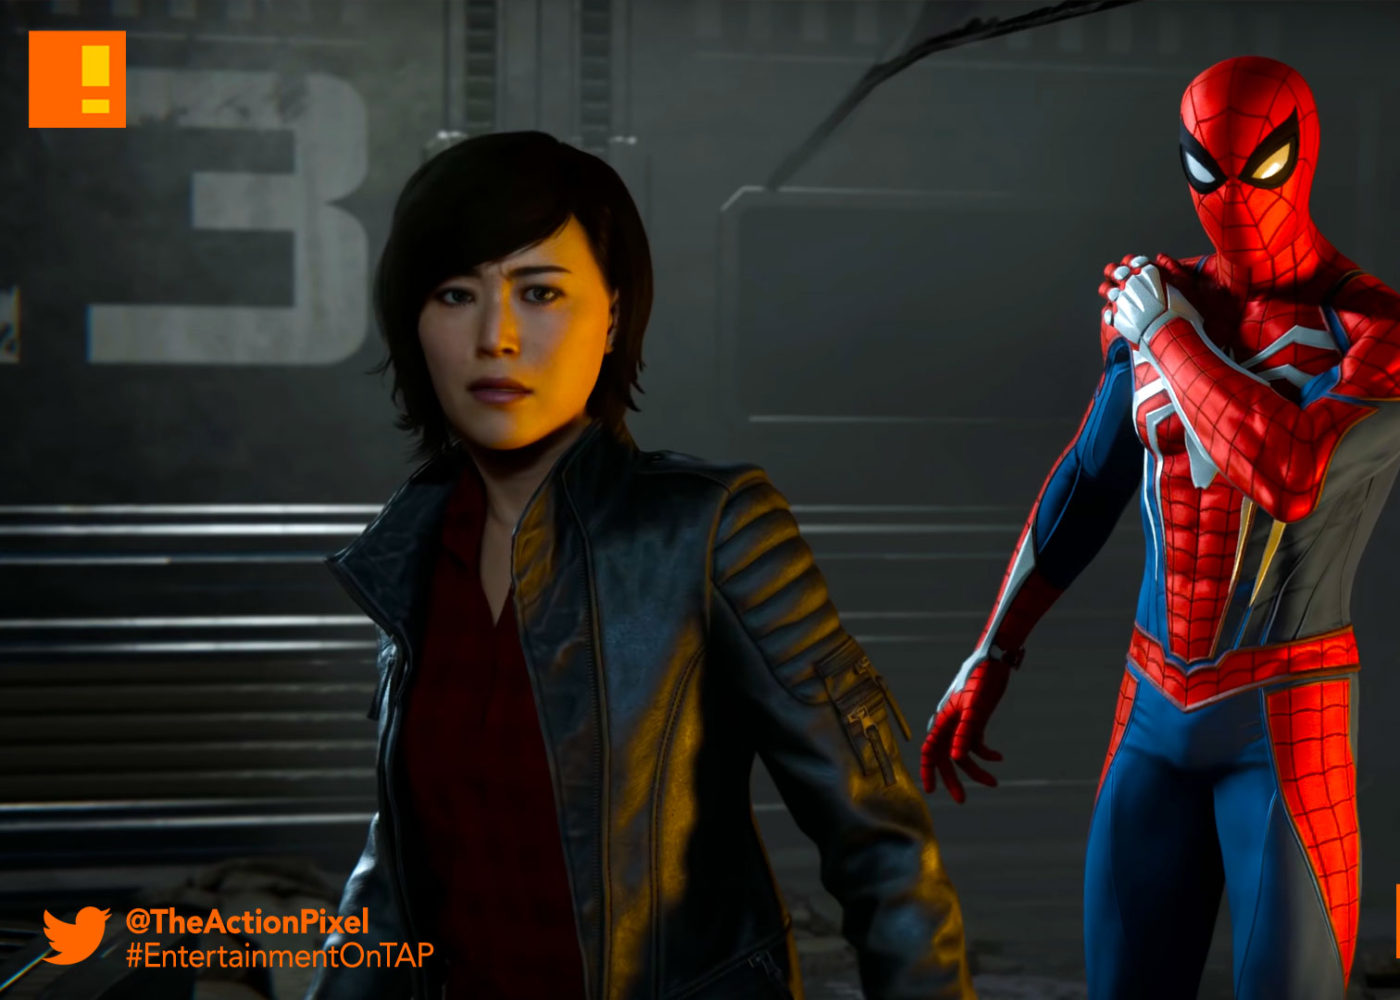 spider-man, marvel, marvel's spider-man,ps4,playstation 4, playstation, peter parker, demons, wilson fisk, fisk, king pin, gameplay trailer, e3 , e3 2017, electronic entertainment expo, marvel comics,the action pixel, entertainment on tap, insomniac games, e3 gameplay,sony e3,e3 2018